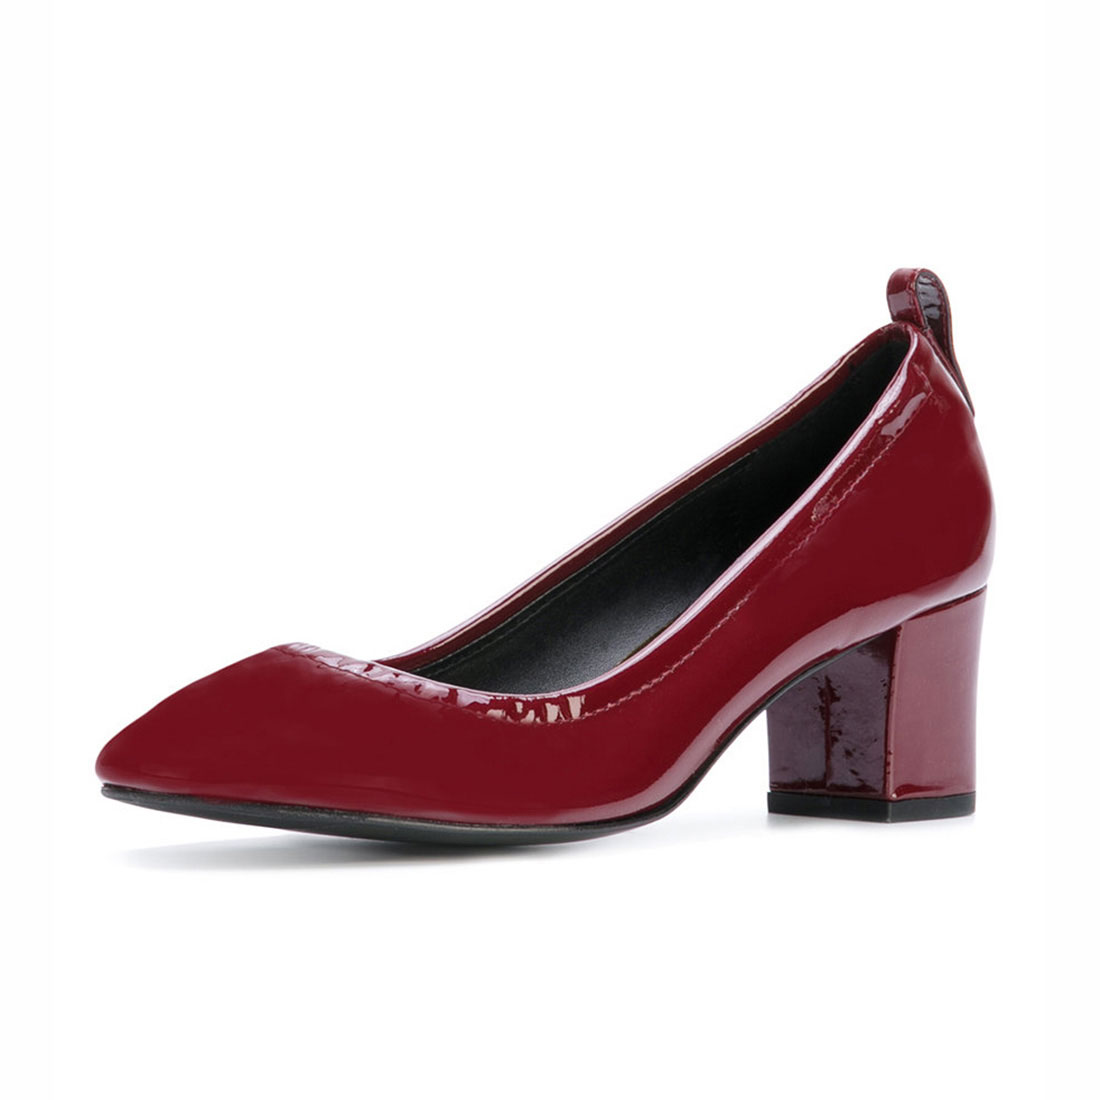 Patent leather dark red high heel plain office ladies pump shoes outlet YB4038